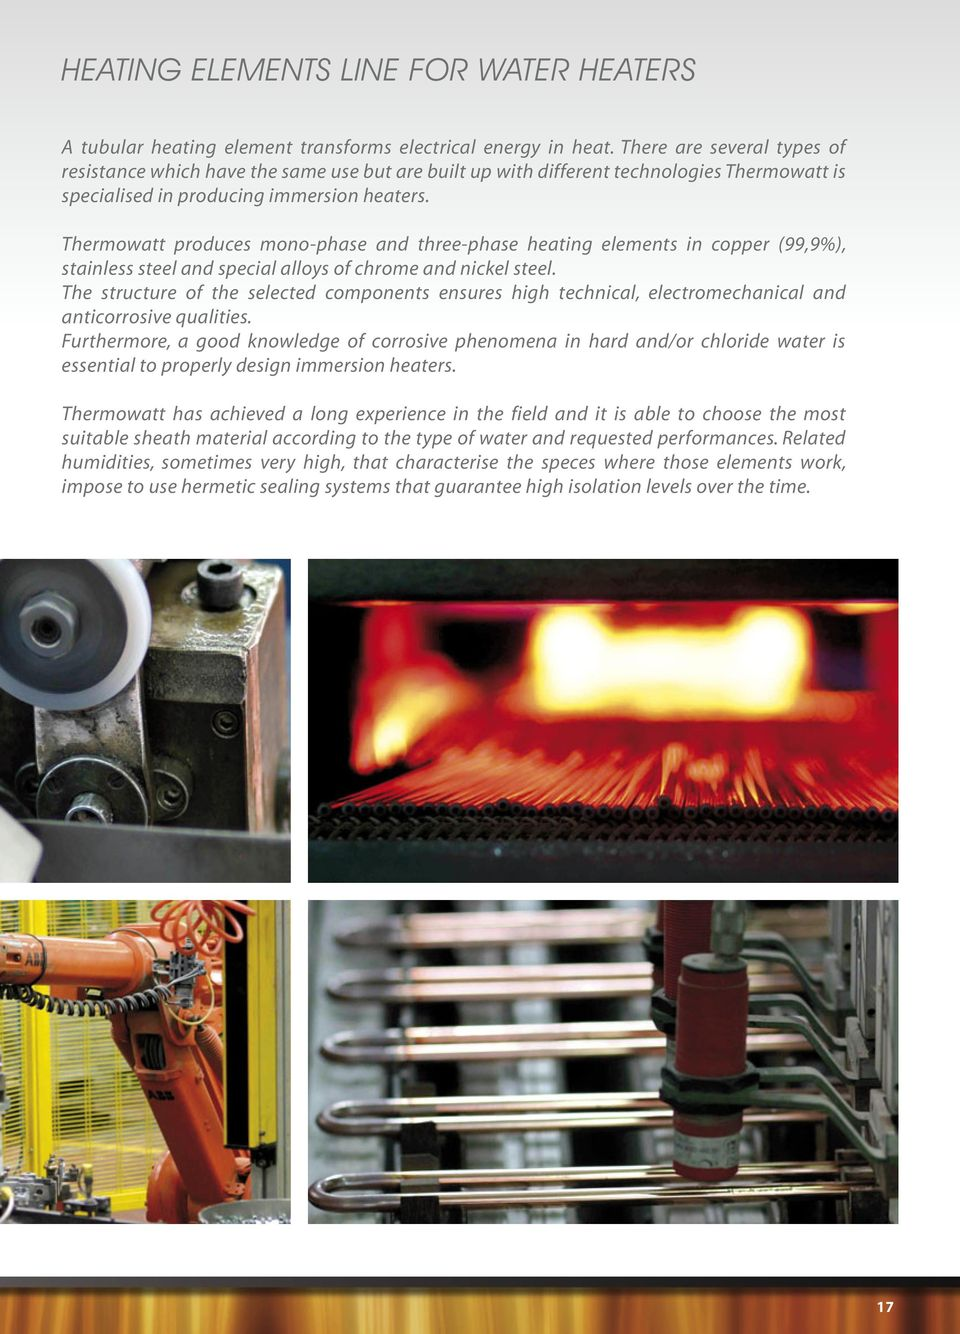 Thermowatt produces mono-phase and three-phase heating elements in copper (99,9%), stainless steel and special alloys of chrome and nickel steel.